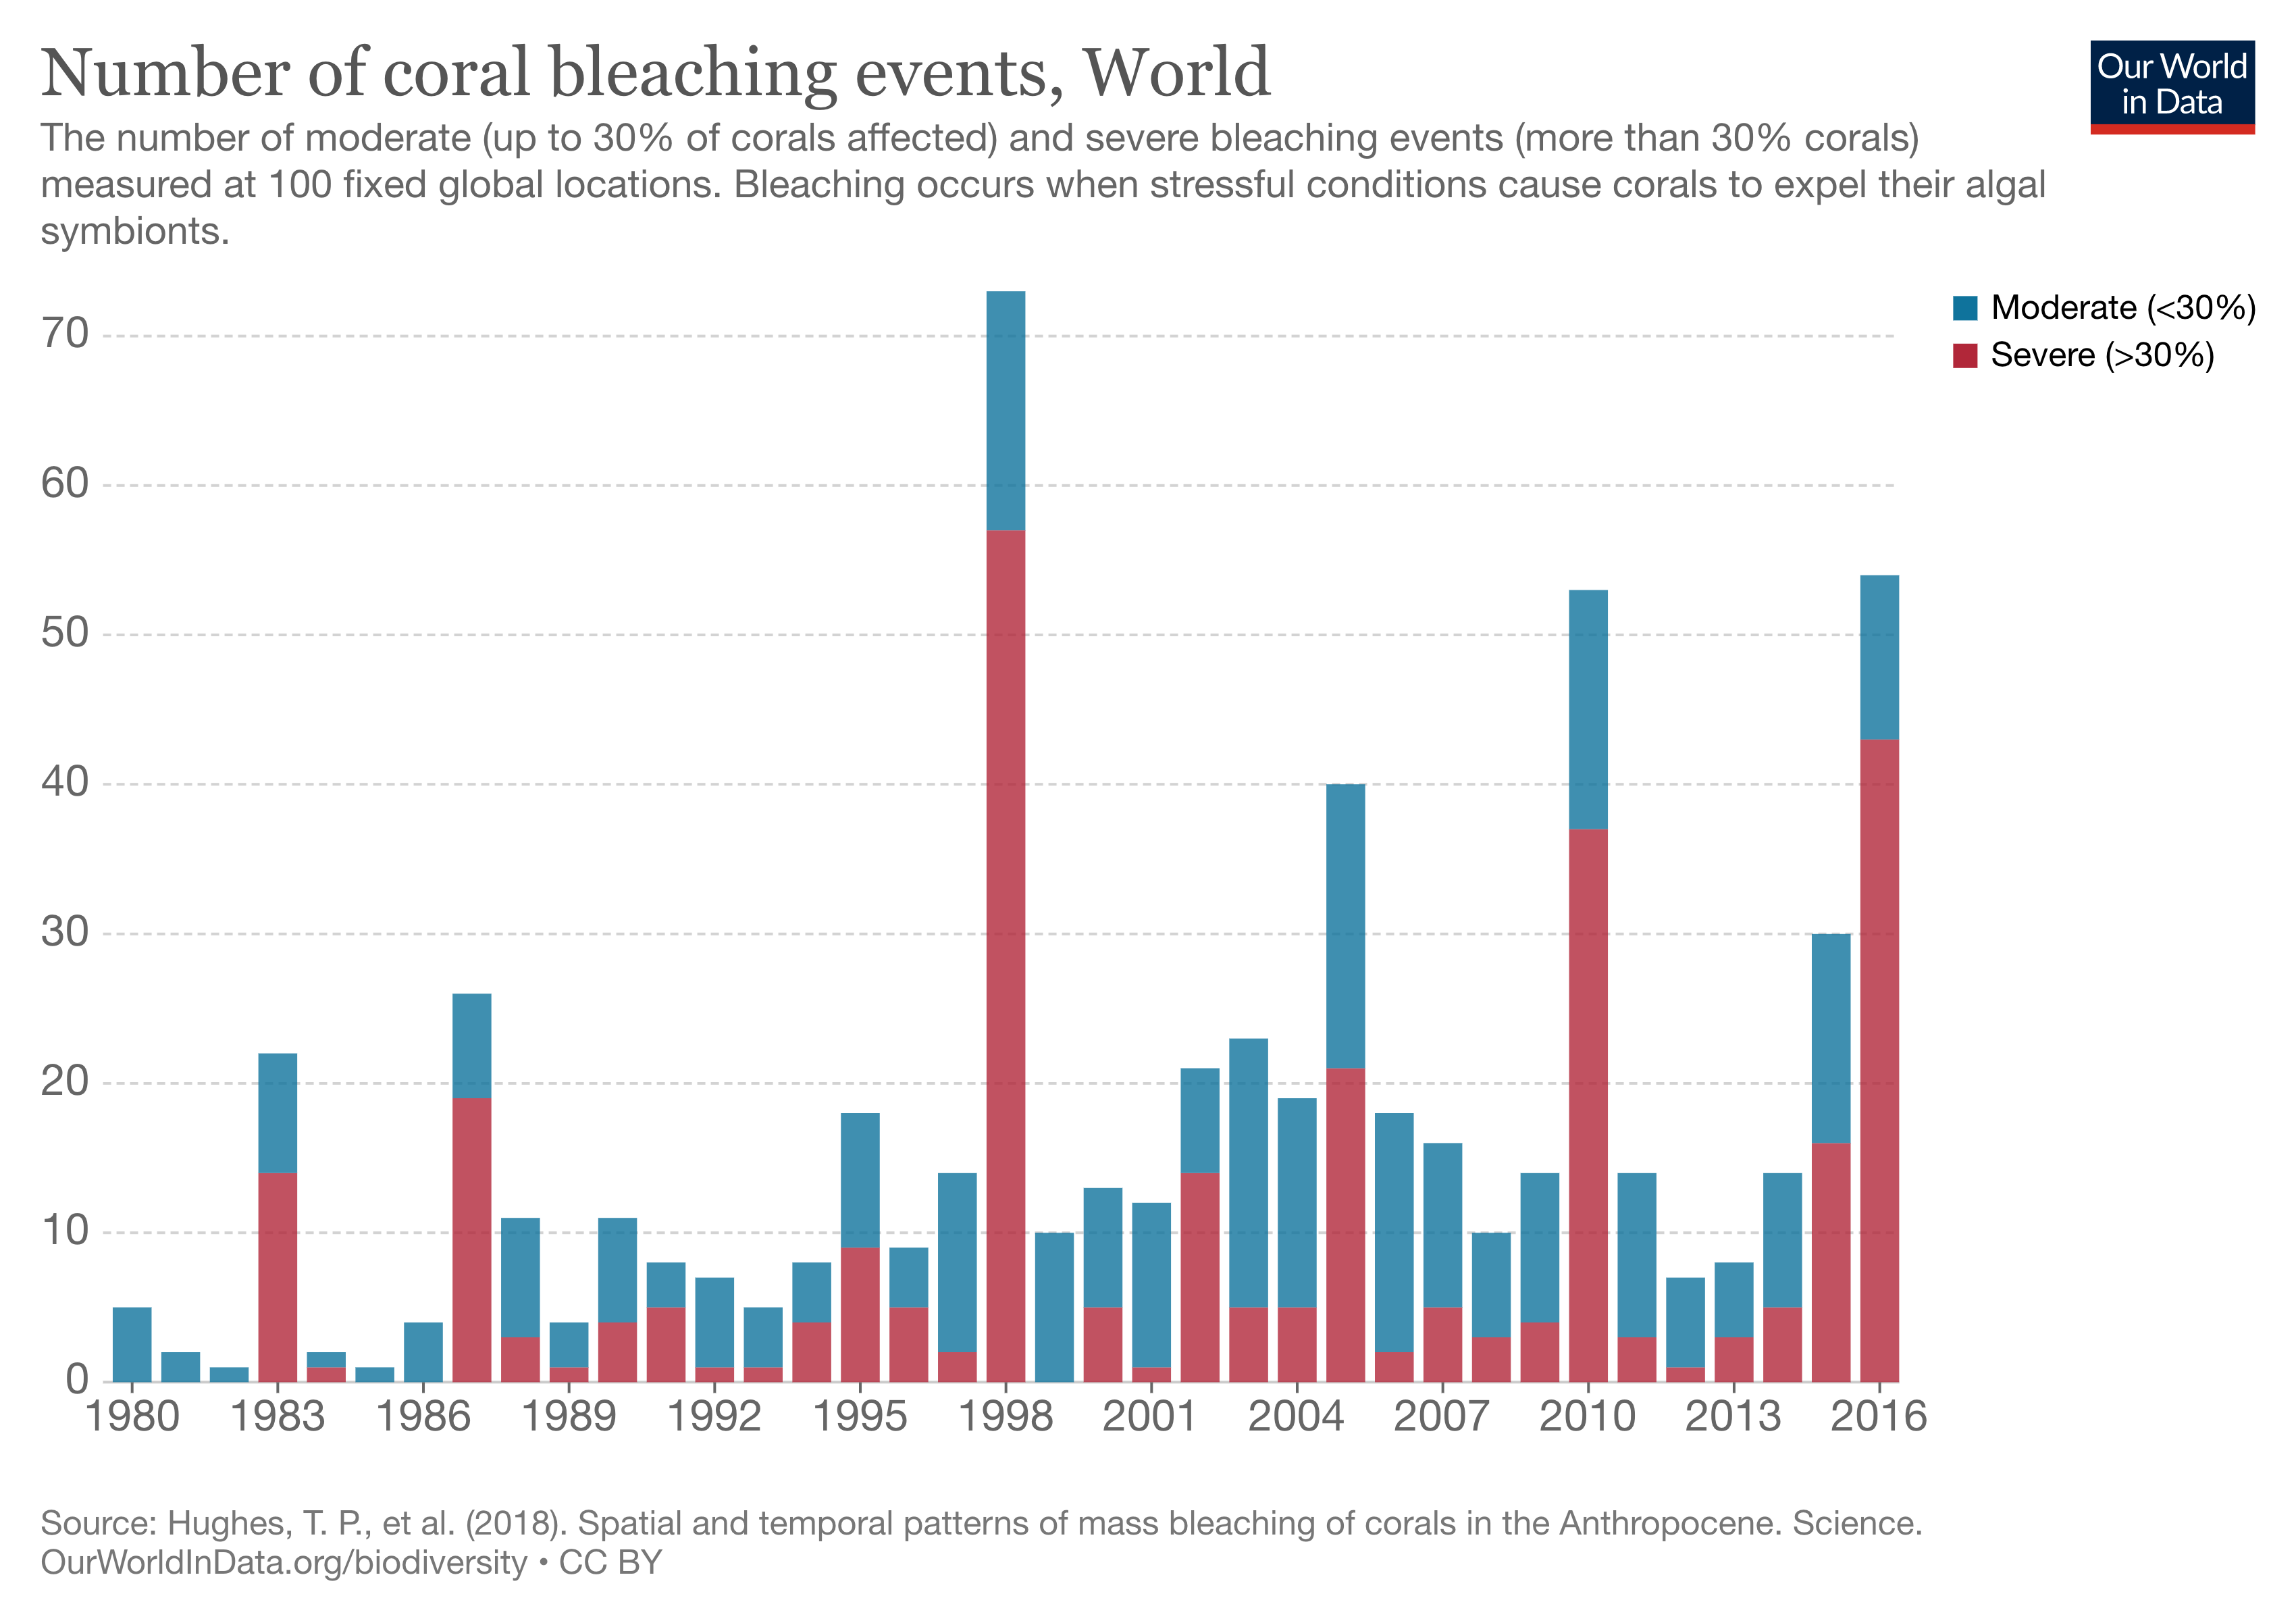 a chart showing then number of coral bleaching events worldwide from 1980 - 2016